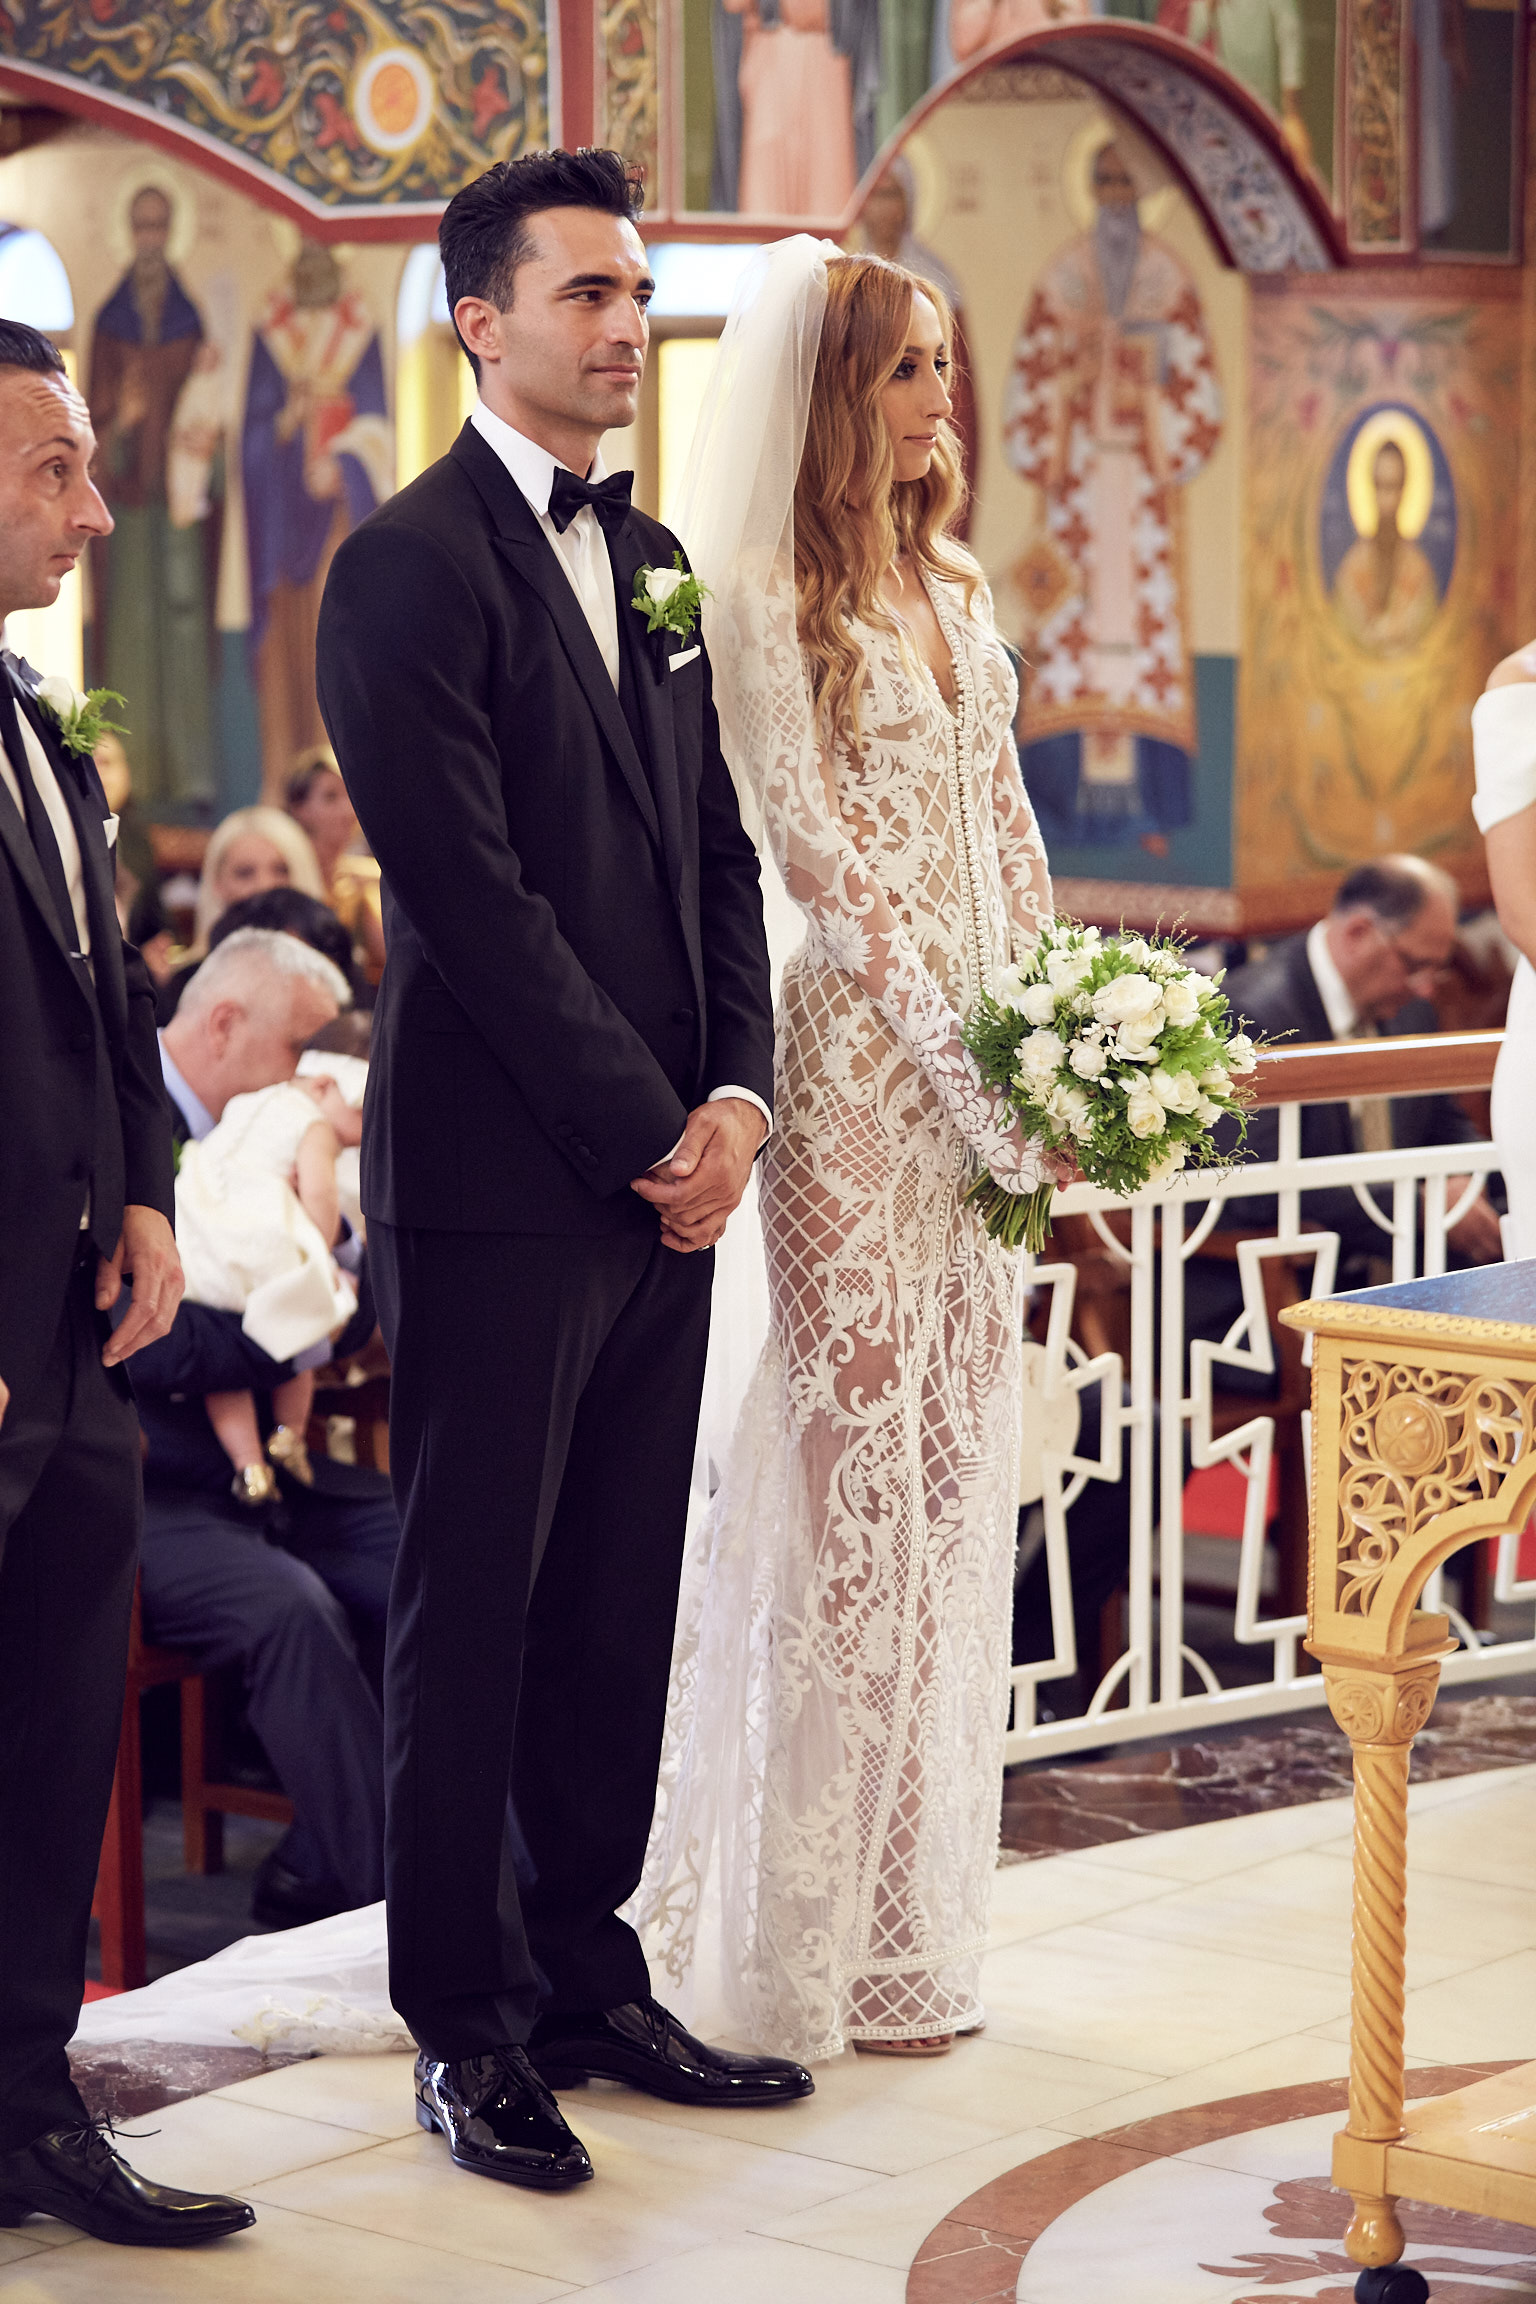 Greek Orthodox church wedding by Lost In Love Photography